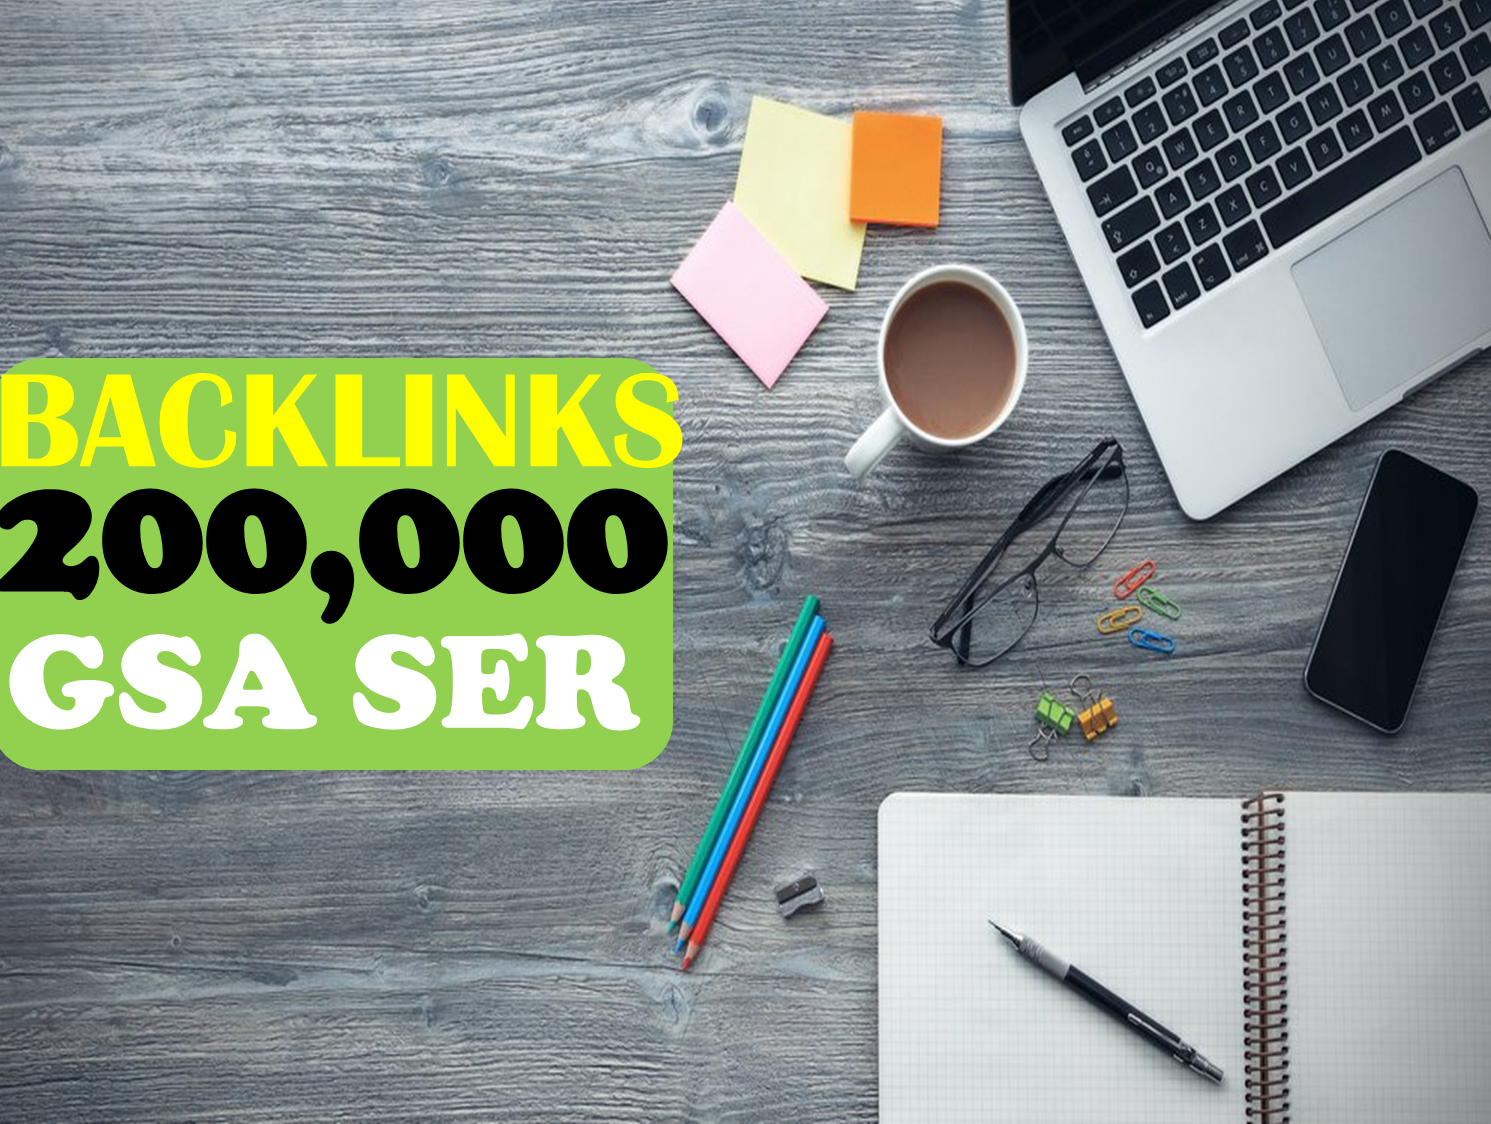 1st page on Google Blast 200,000 Seo Verified BACKLINKS Cracking Gsa Ser